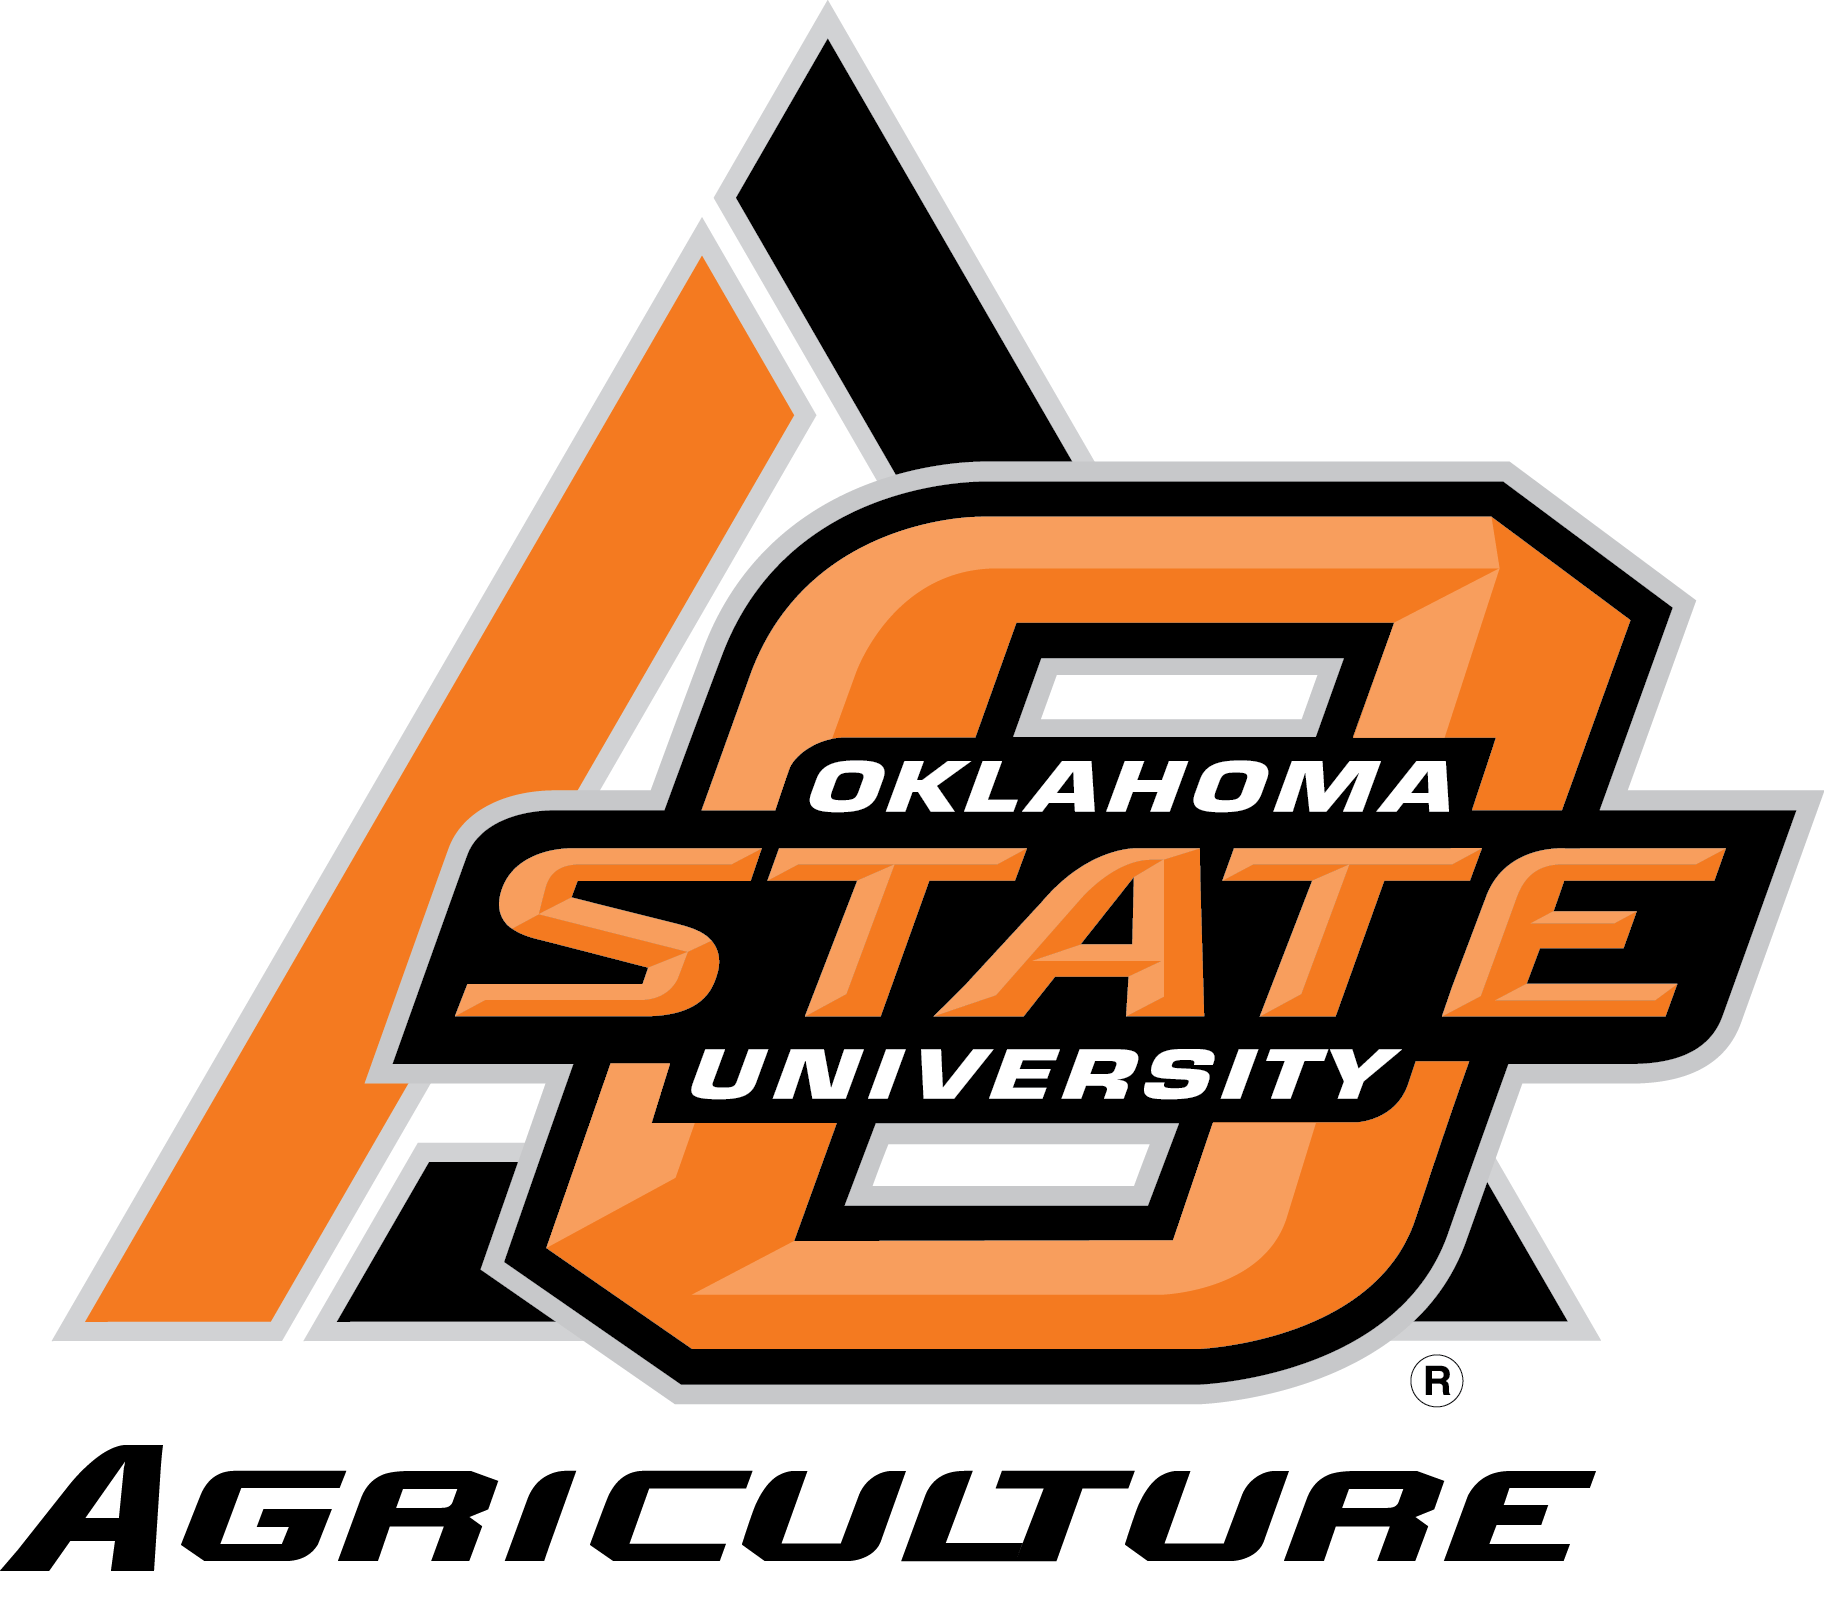 College Of Agricultural Sciences And Natural Resources Oklahoma State University